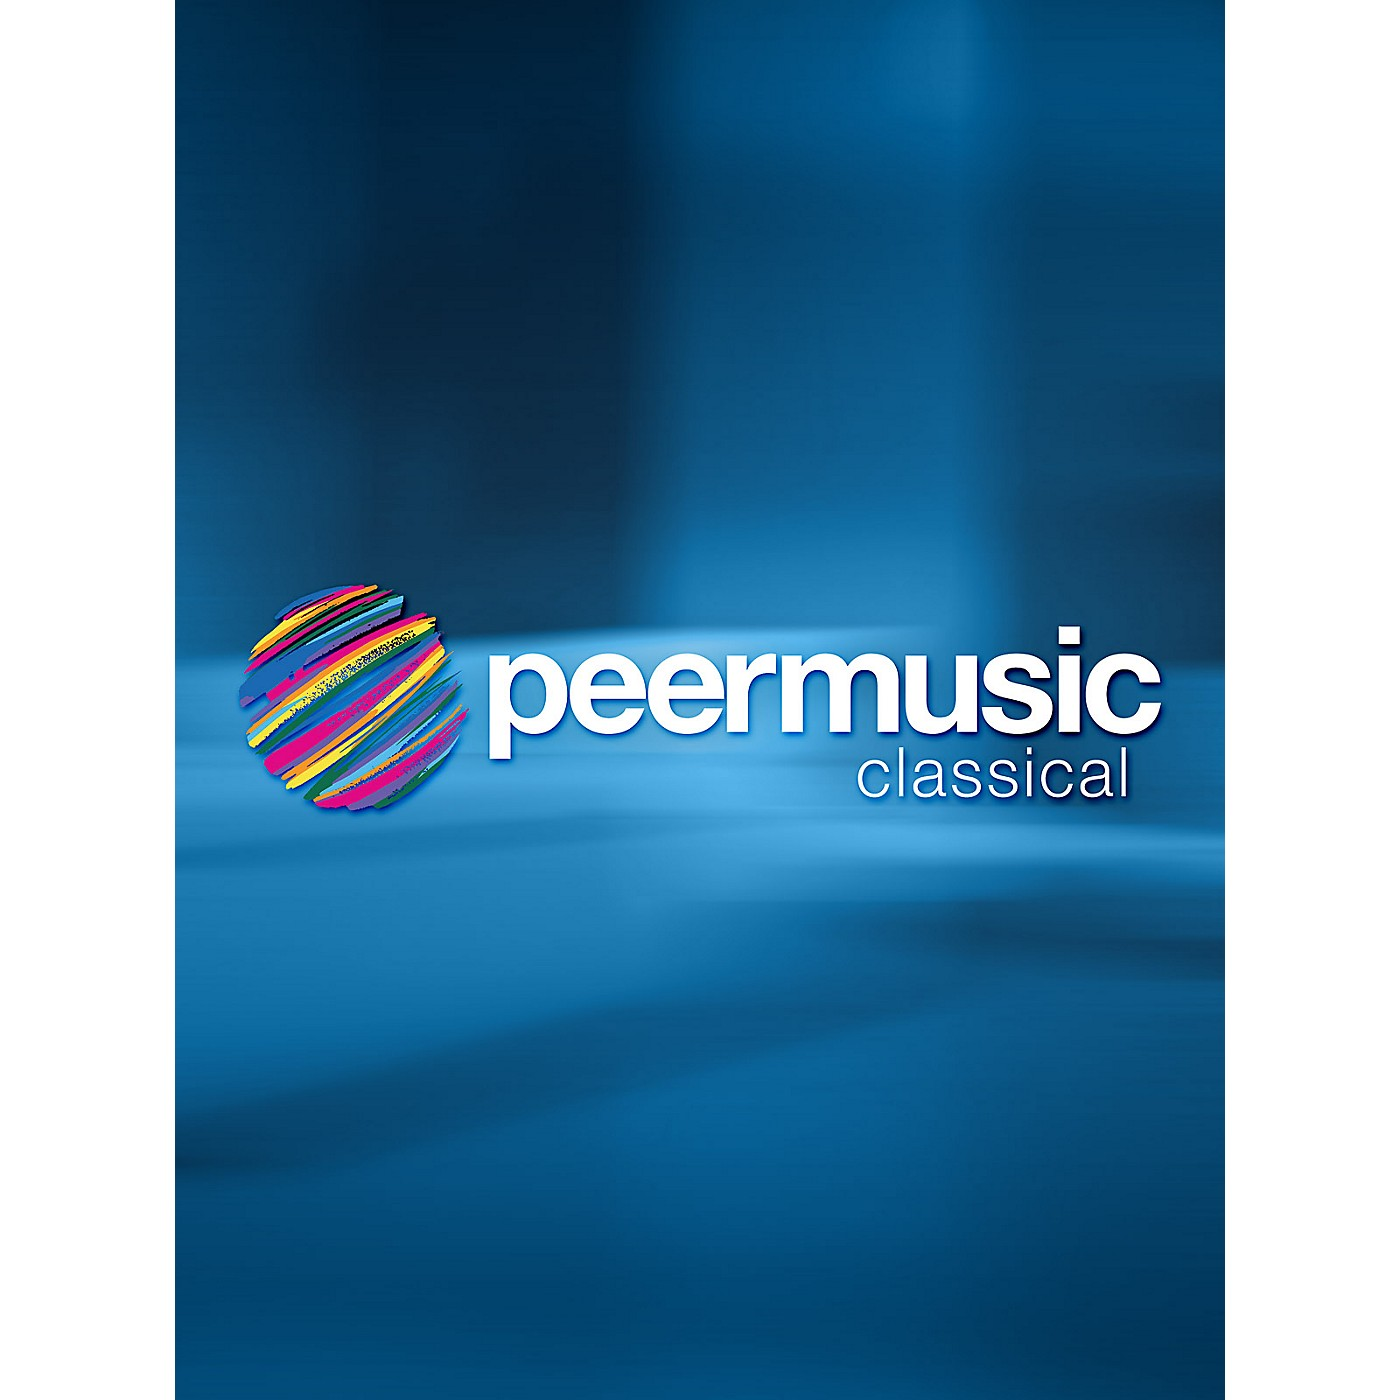 Peer Music Pastoral & Scherzo (Violin and Piano) Peermusic Classical Series Softcover thumbnail